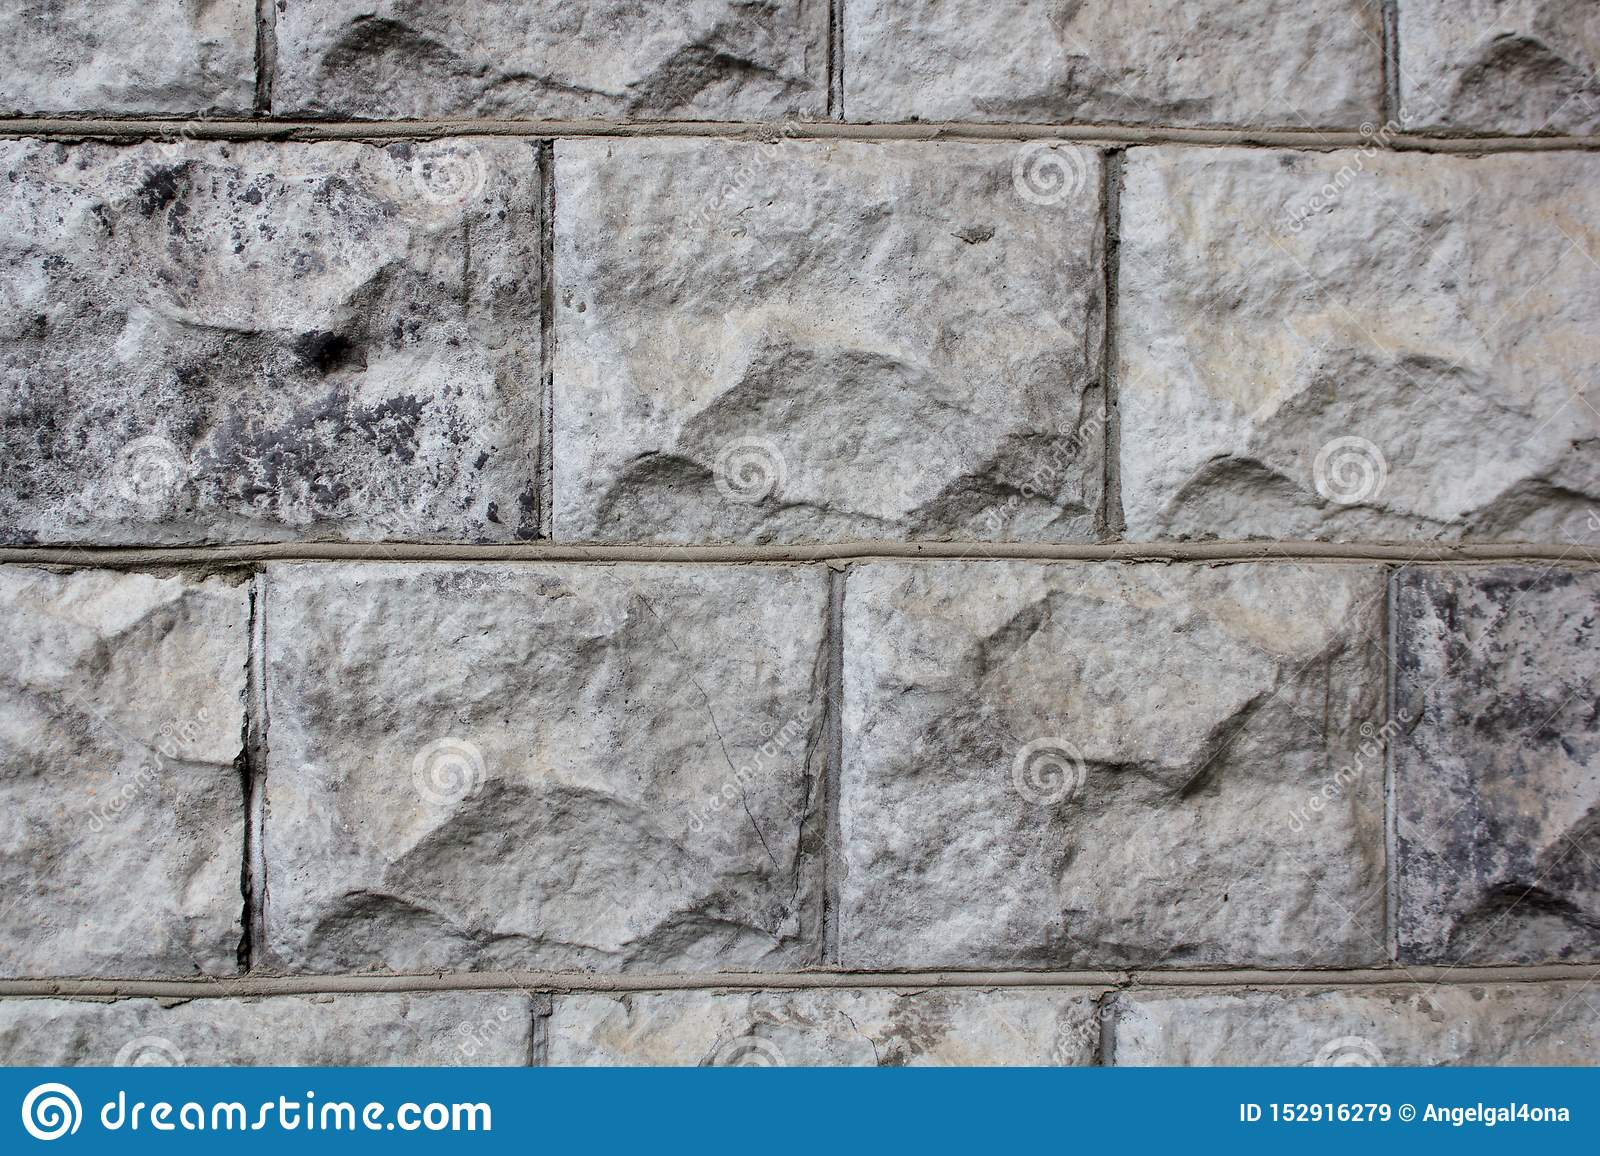 Wall Stone Background Texture Natural Rock Abstract Pattern Architecture Material Surface Old Vintage Masonry Design Stock Image Image Of Rock Material 152916279